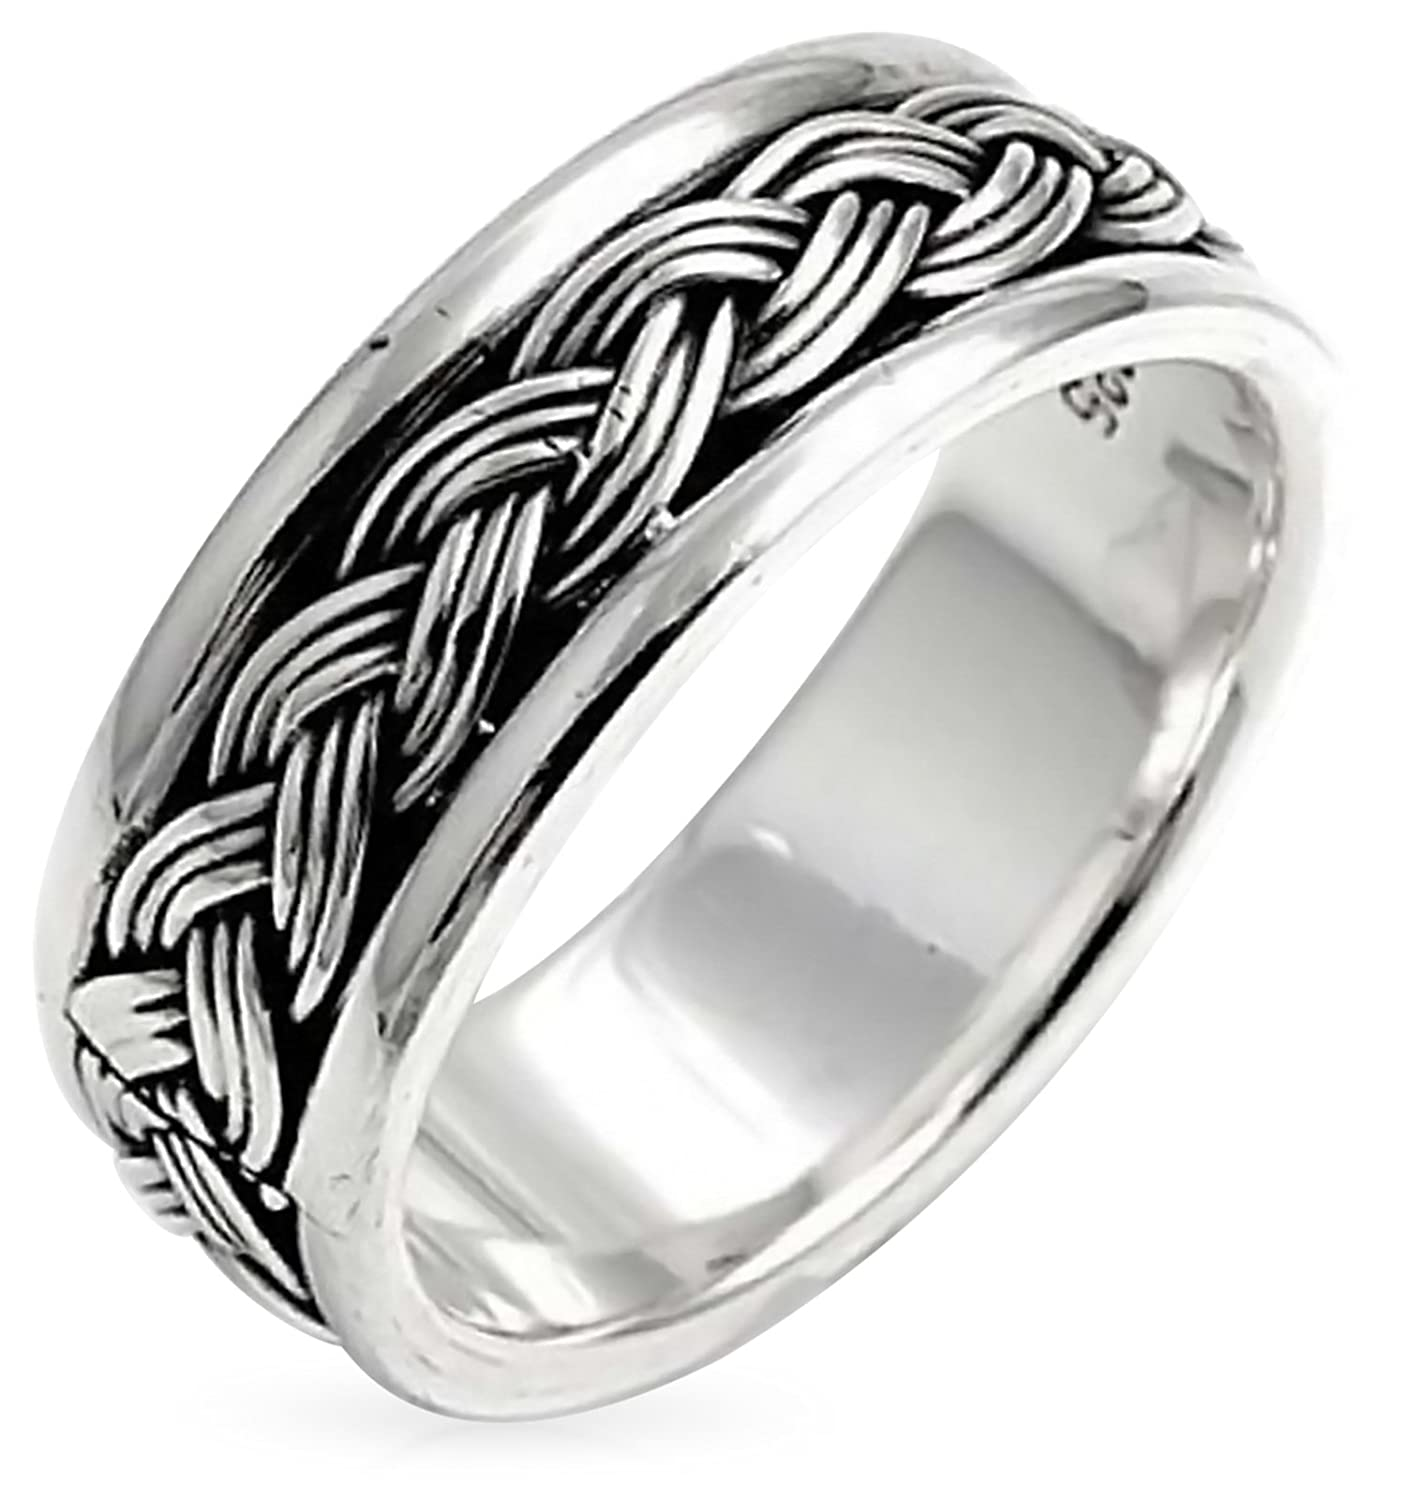 Bling Jewelry Men Sterling Silver Braided Band Ring Amazon